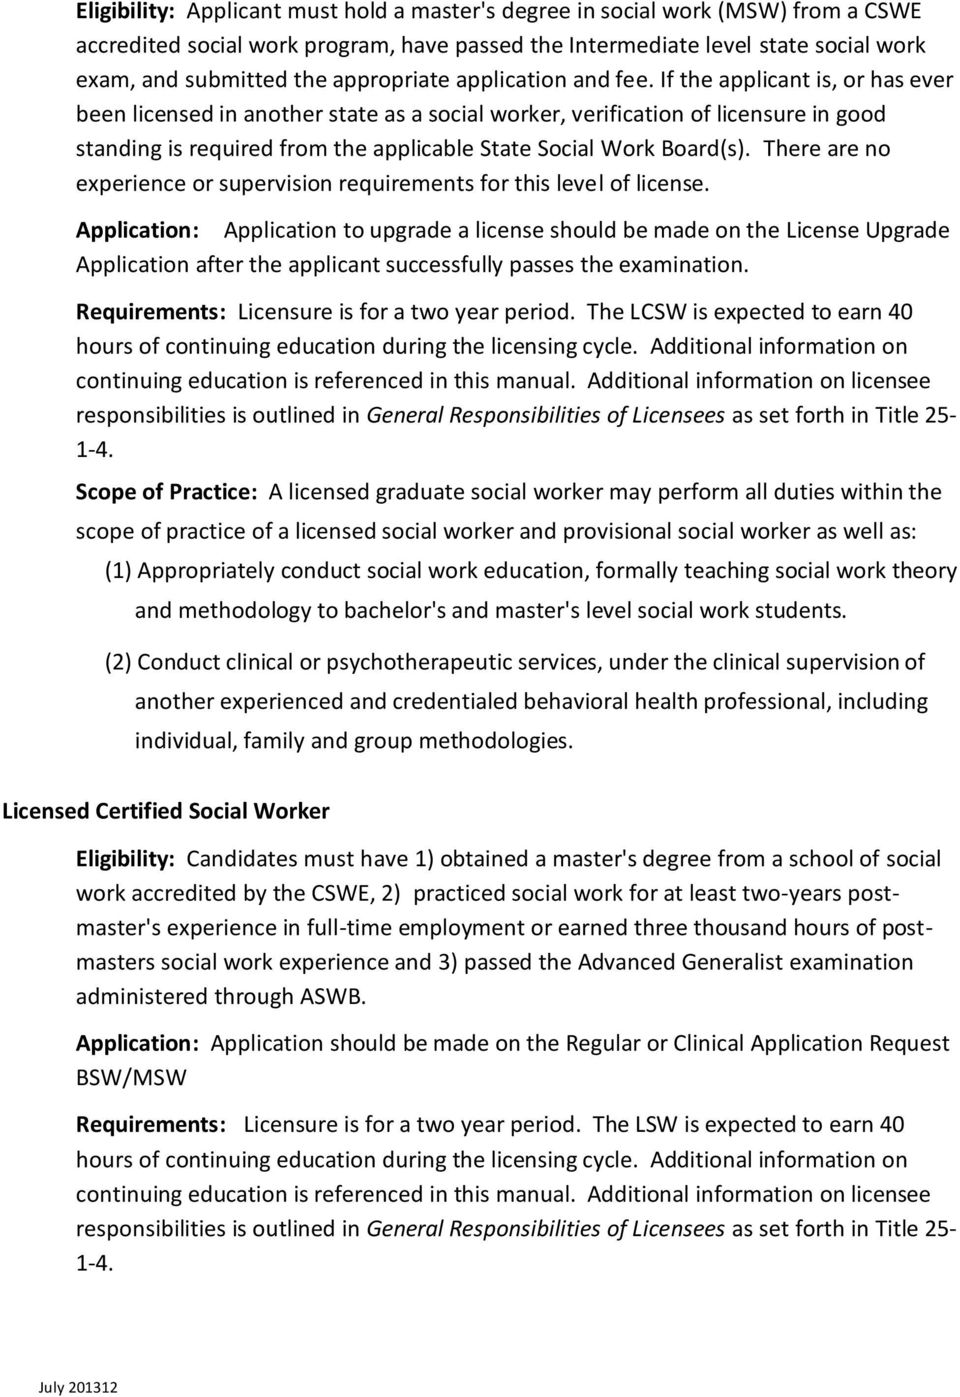 If the applicant is, or has ever been licensed in another state as a social worker, verification of licensure in good standing is required from the applicable State Social Work Board(s).